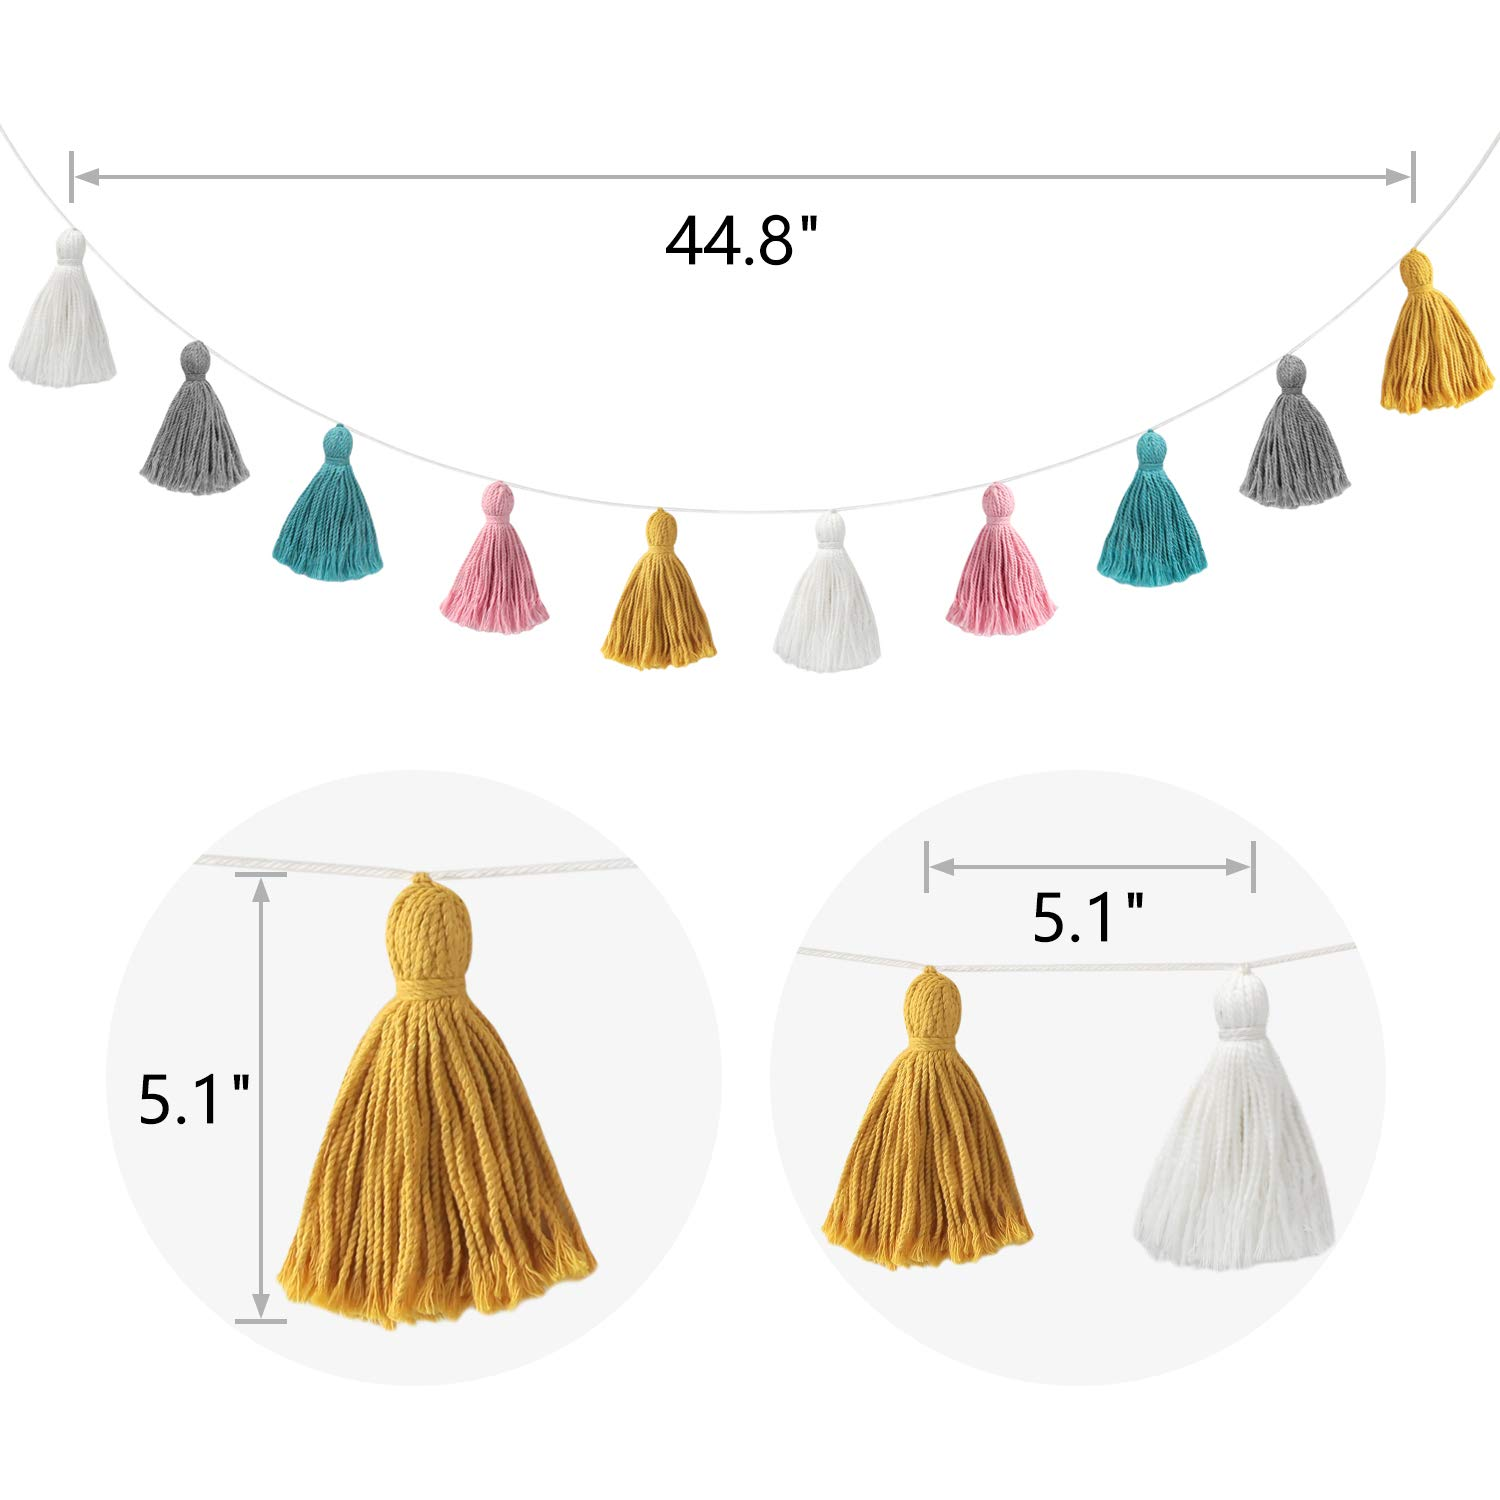 Baby Shower Birthday Mkono 2 Pack Cotton Tassel Garland Banner Colored Party Backdrop Decorative Wall Hangings Llama Decorations for Bedroom Nursey Dorm Room Girls Boho Home Decor,New Year Gift